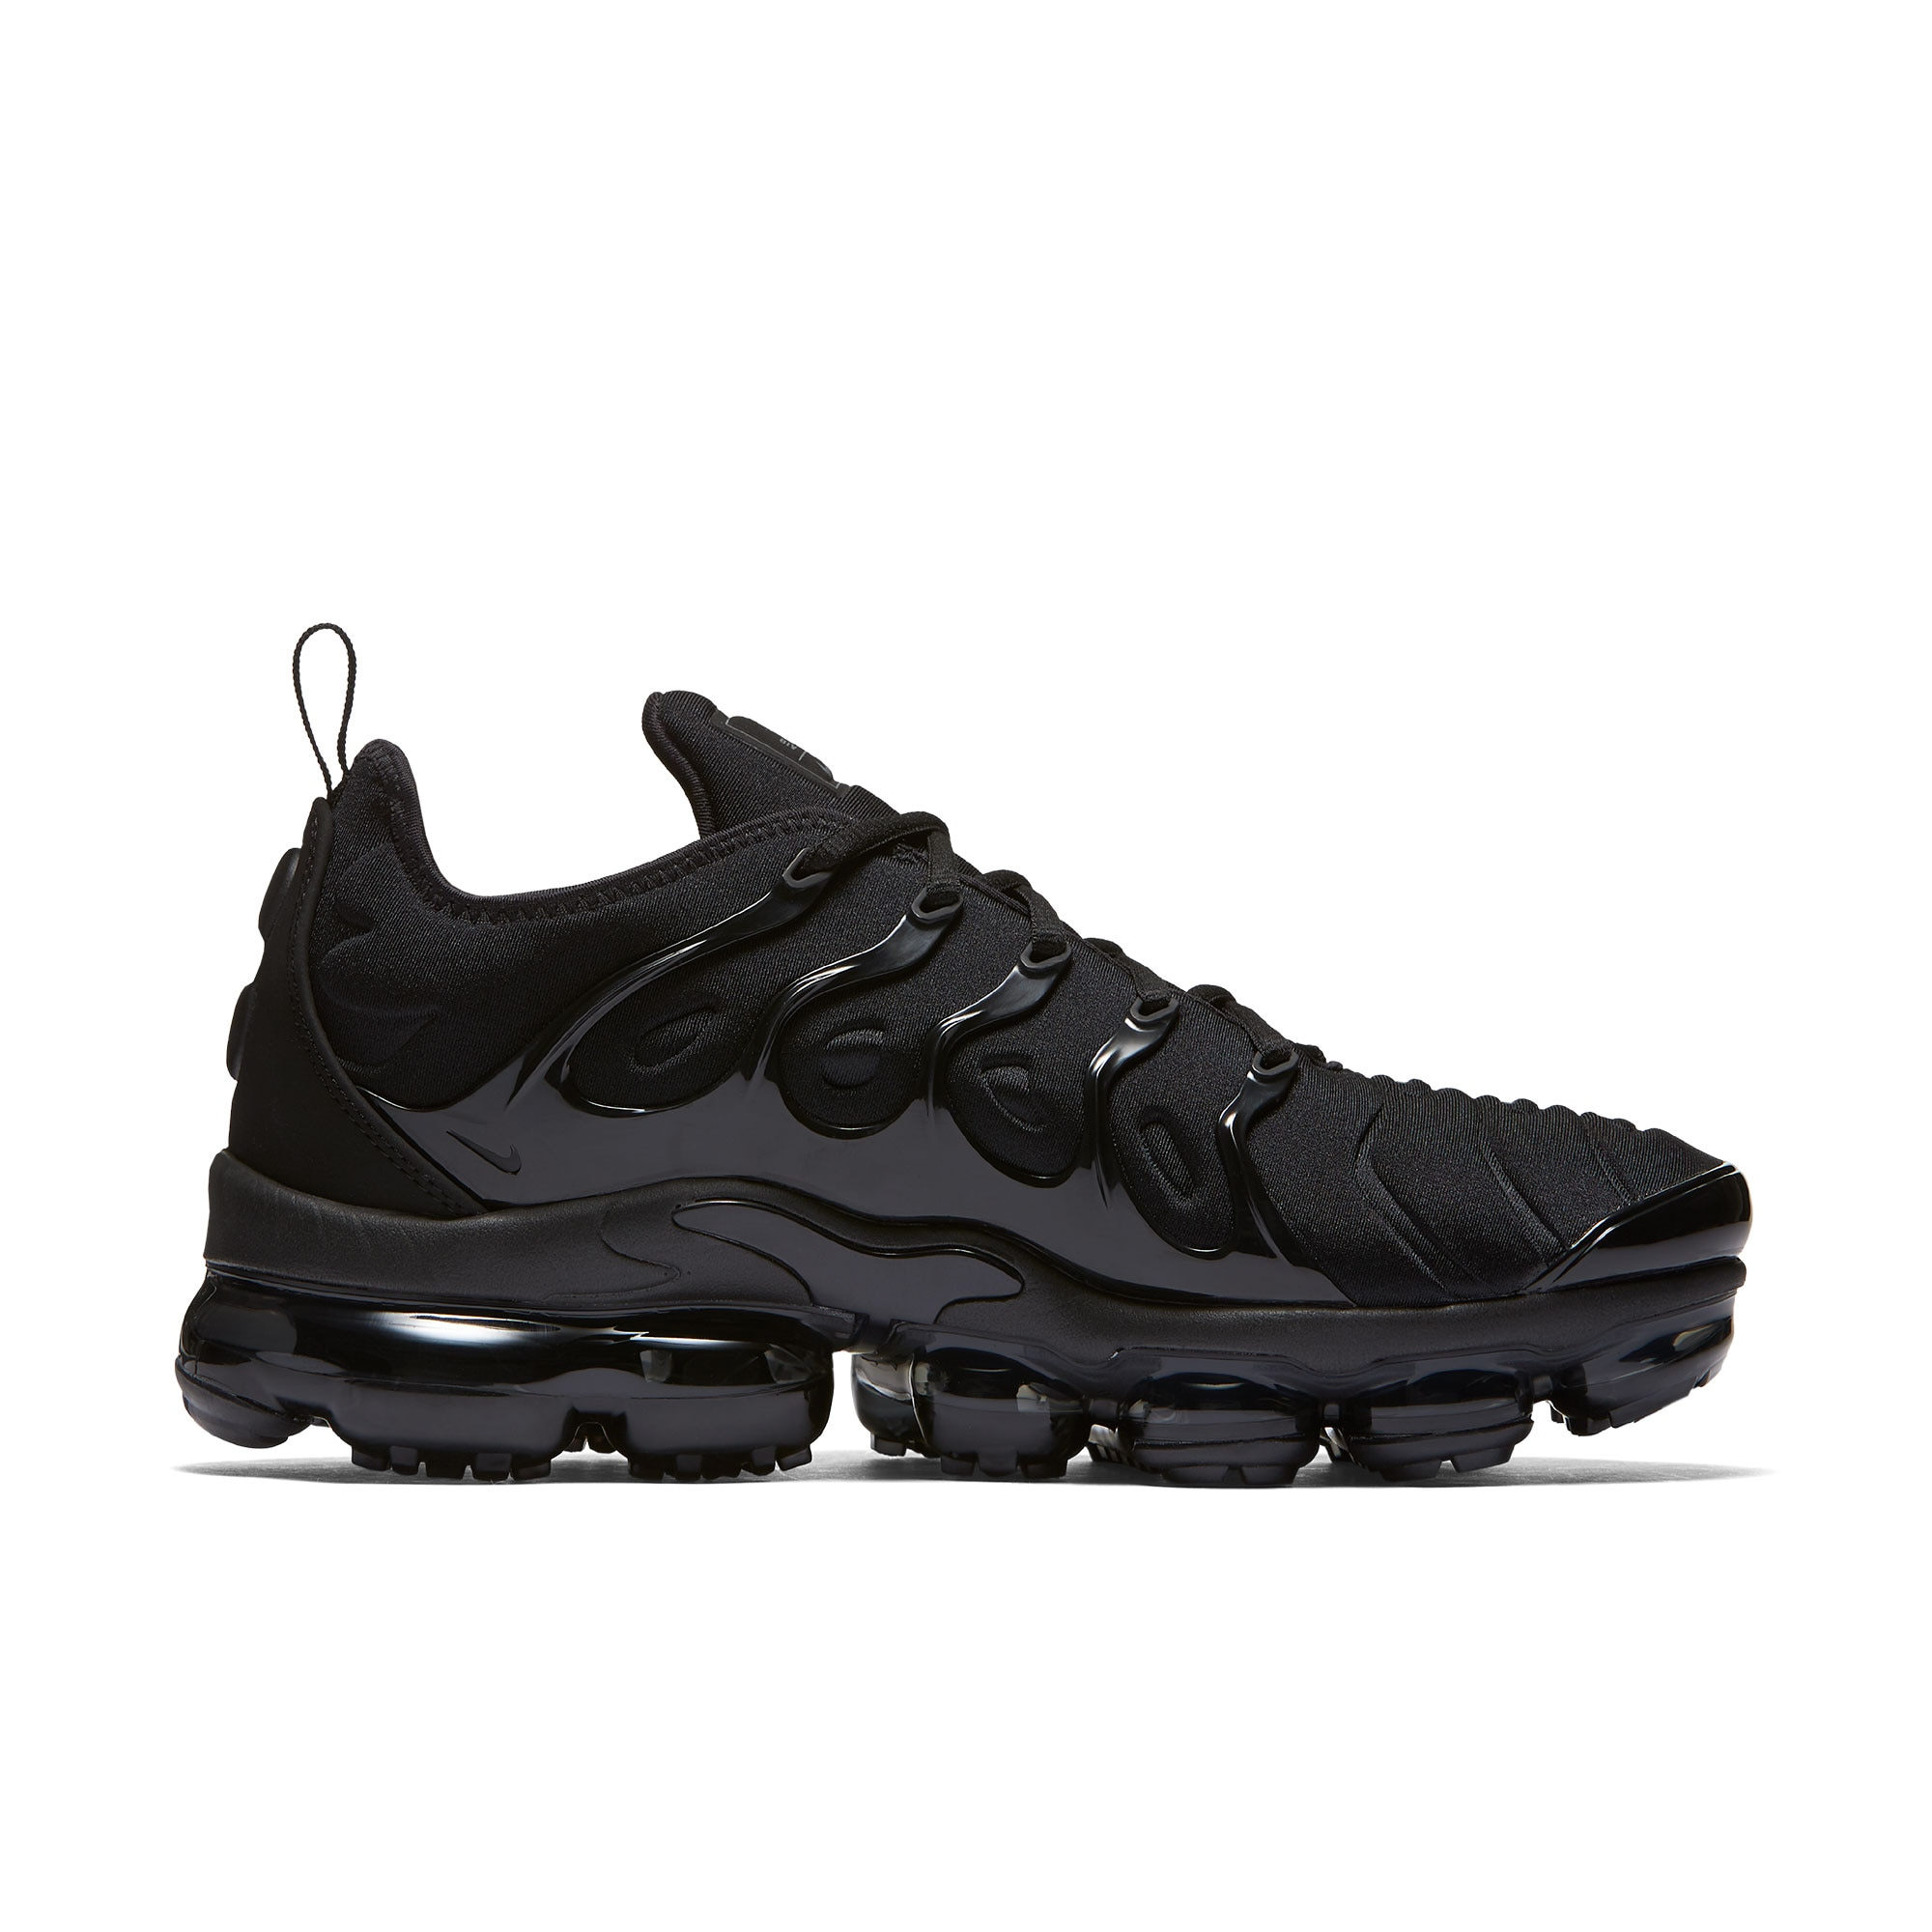 5bb3adf8bb3 variations · Home   Mens Footwear   Nike-Men   Original New Arrival Authentic  NIKE AIR VAPORMAX PLUS Mens Running Shoes ...